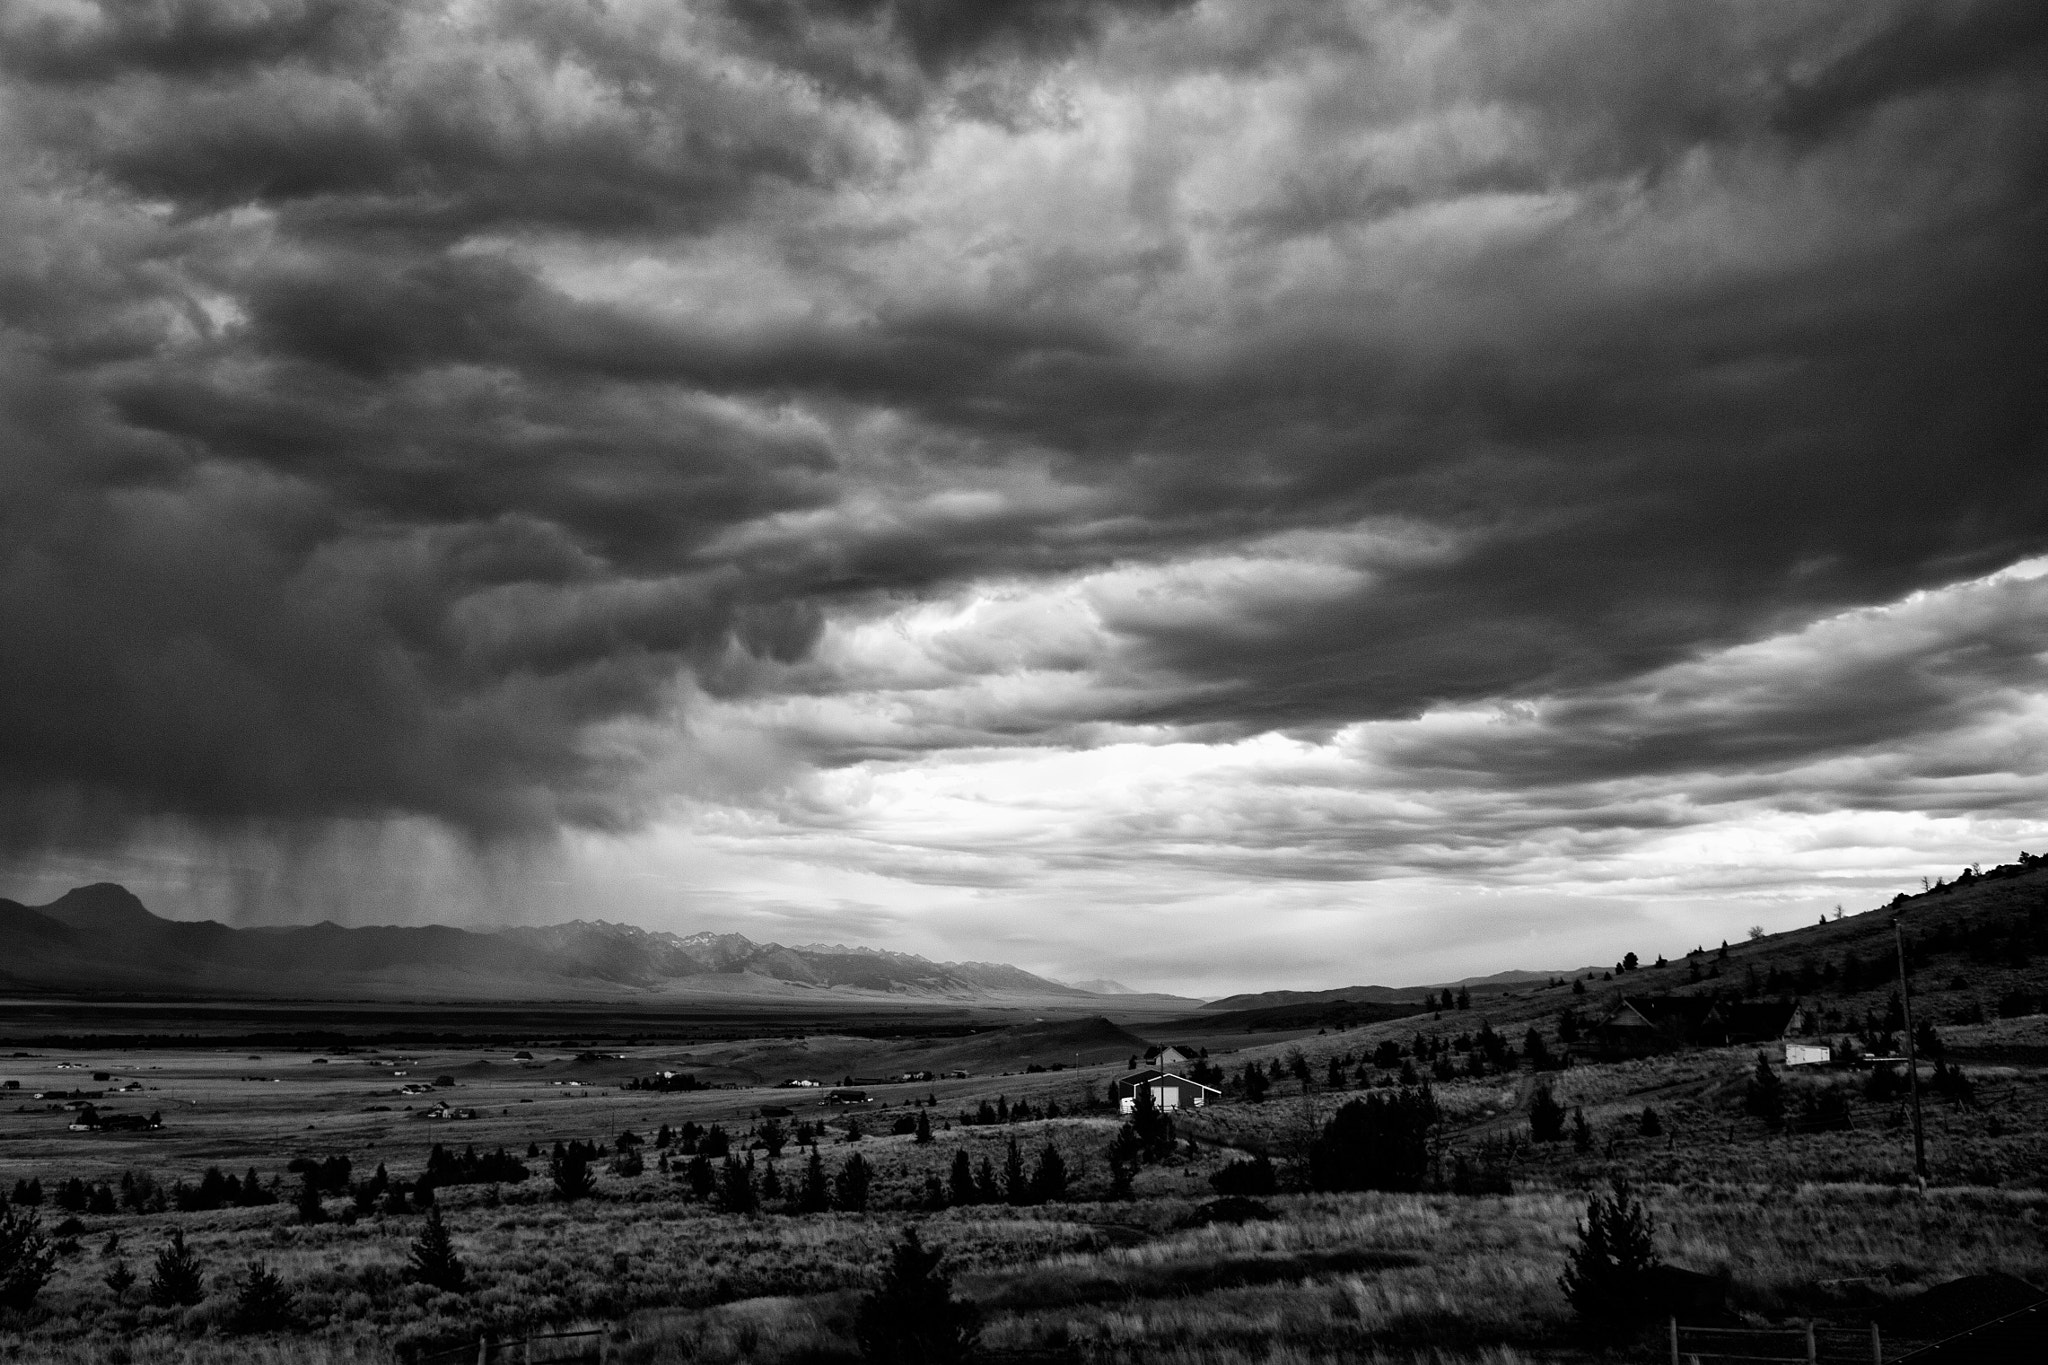 Photograph Storm's a brewin' by David Quinalty on 500px